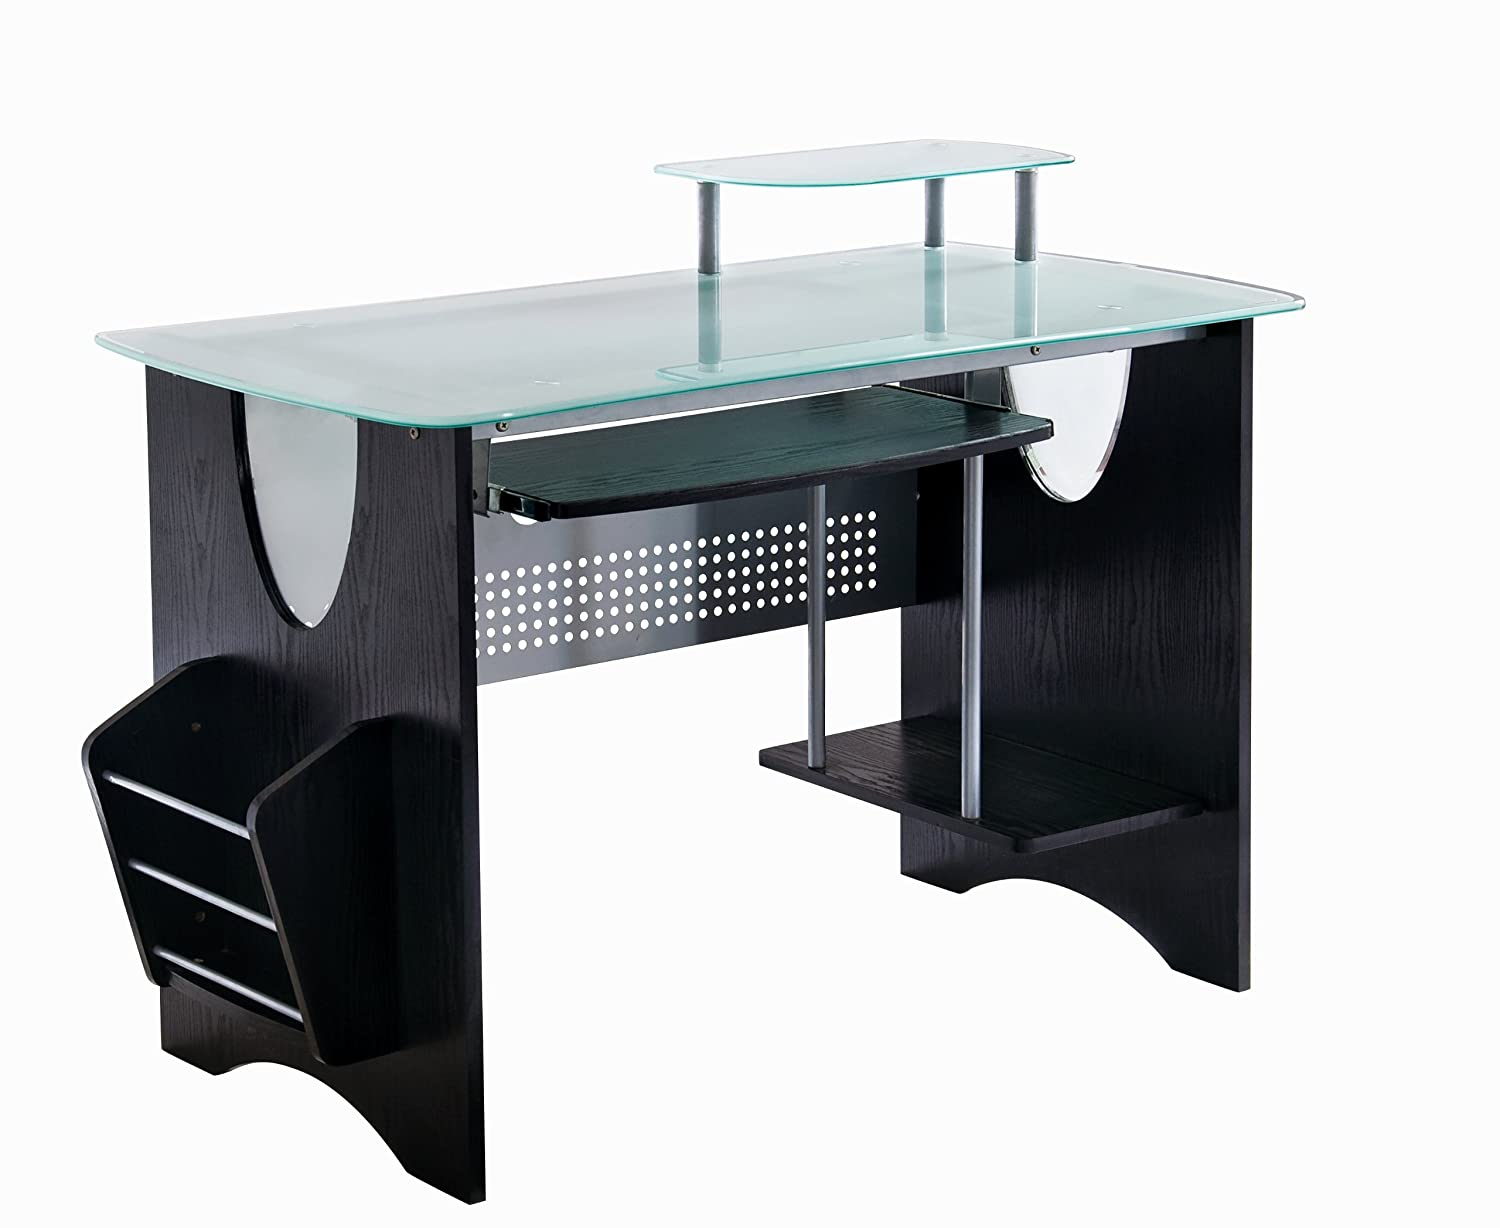 black side ga furniture noble using then office executive particular most ideas as ostin table wells ft desk in staggering glass